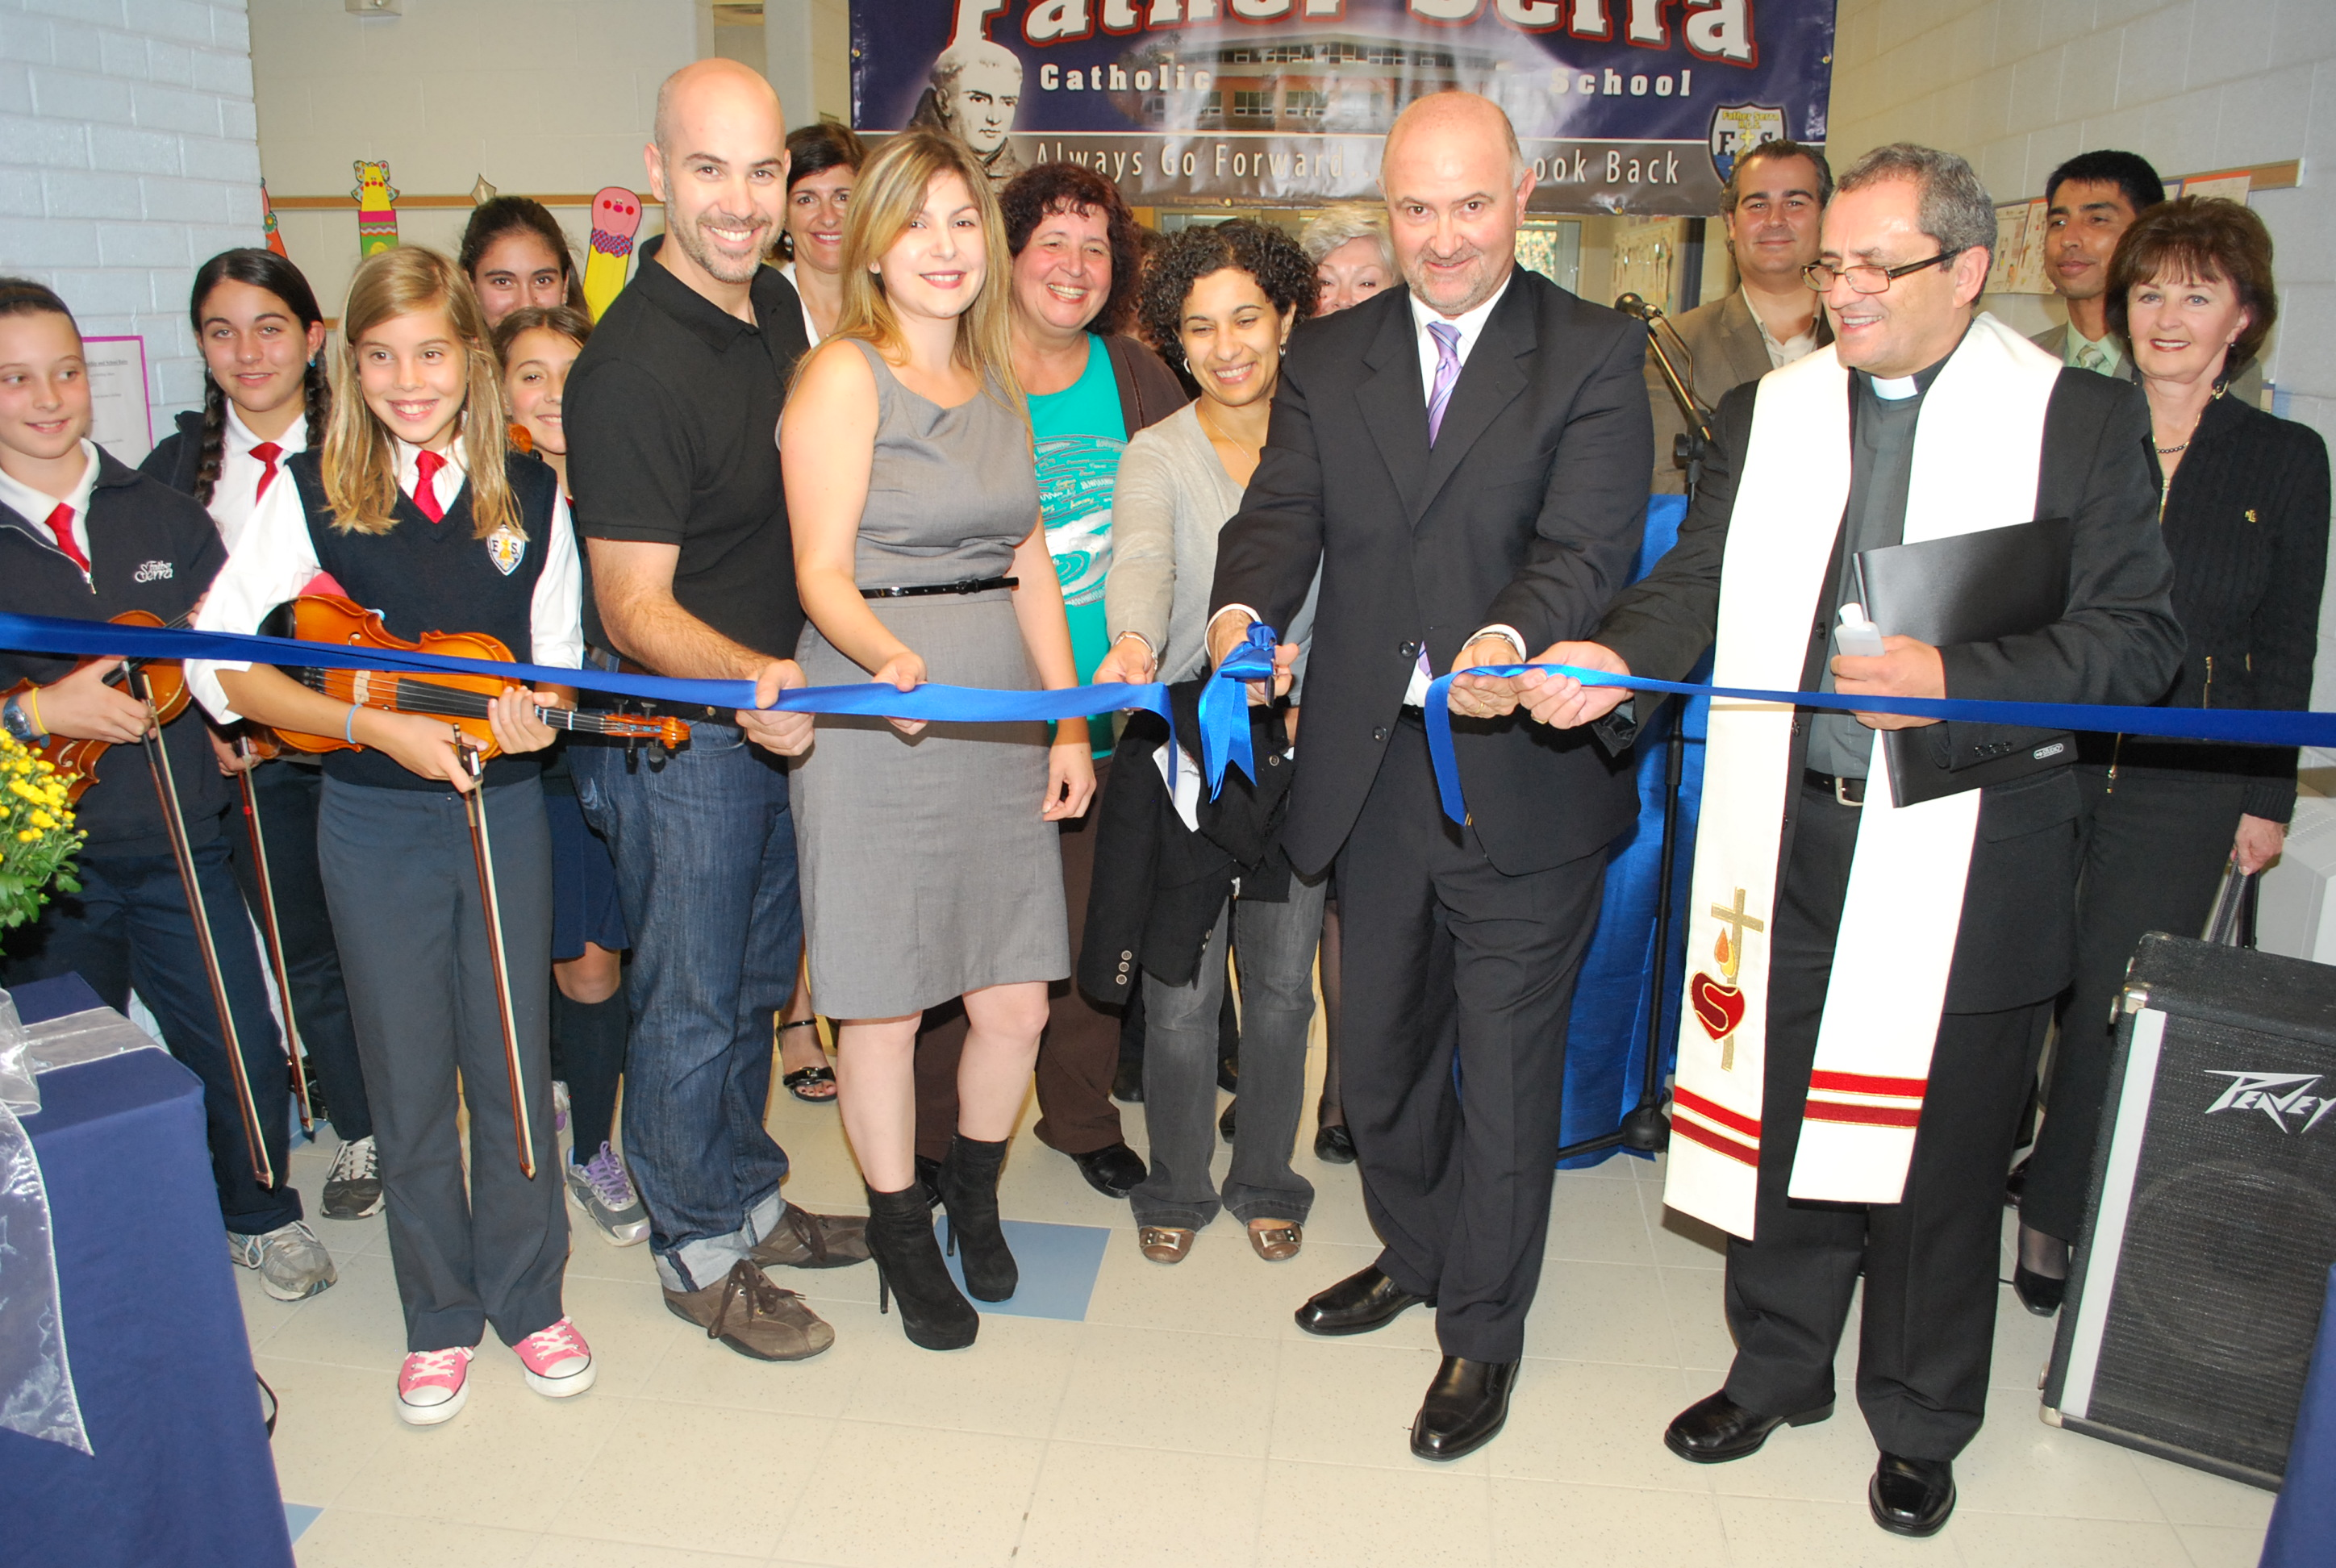 ribboncutting2.JPG